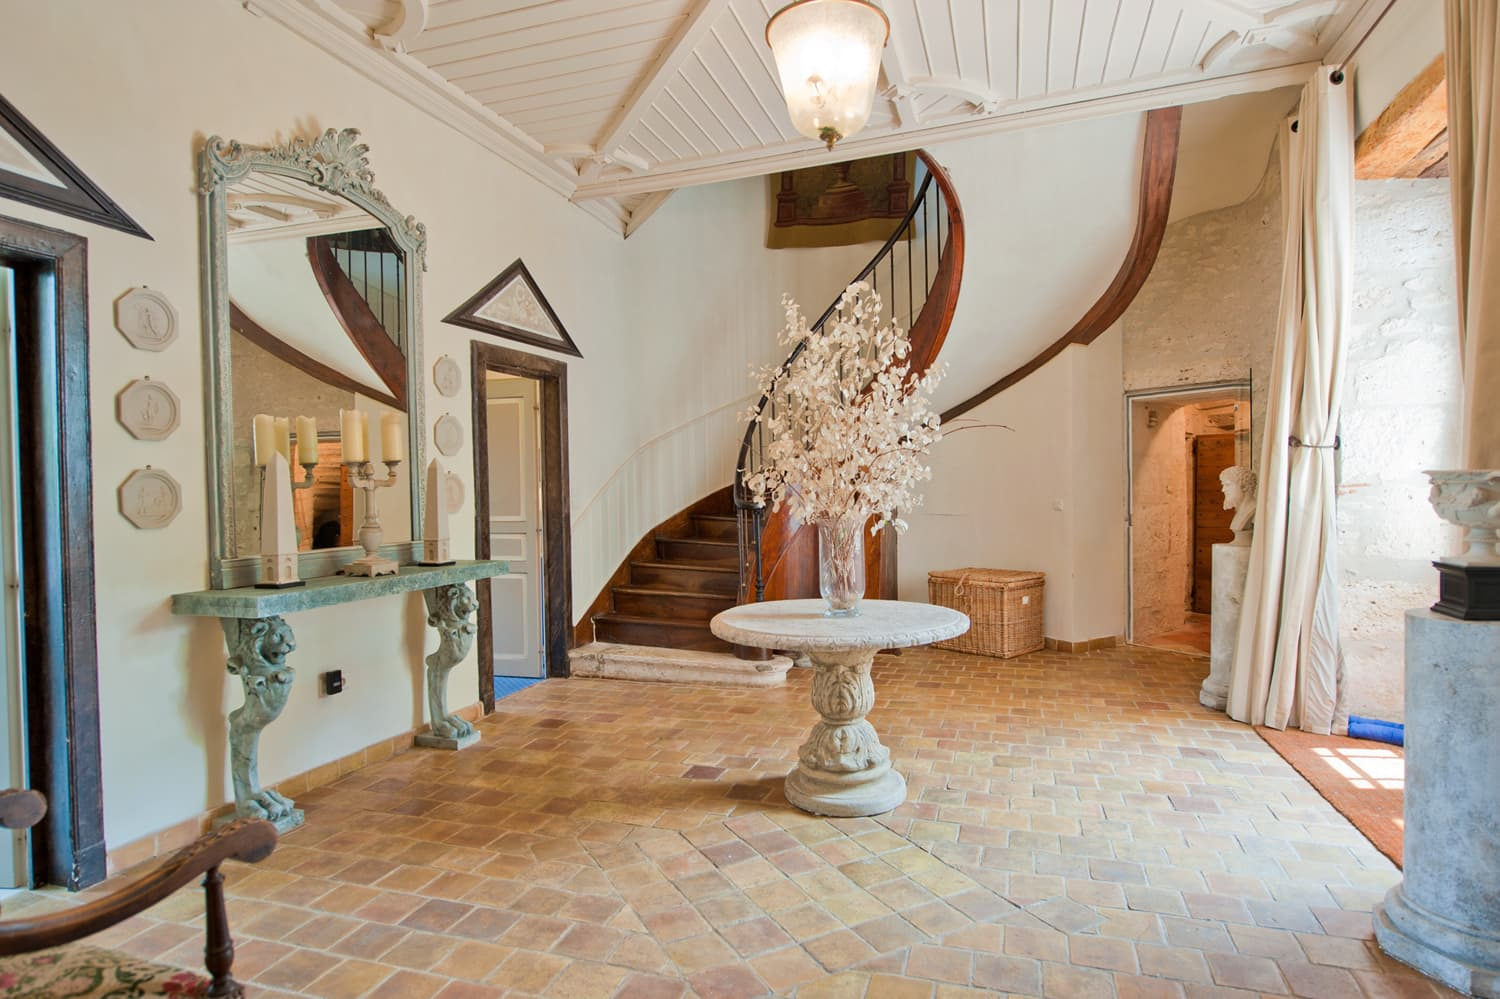 Entrance hall in South West France rental accommodation